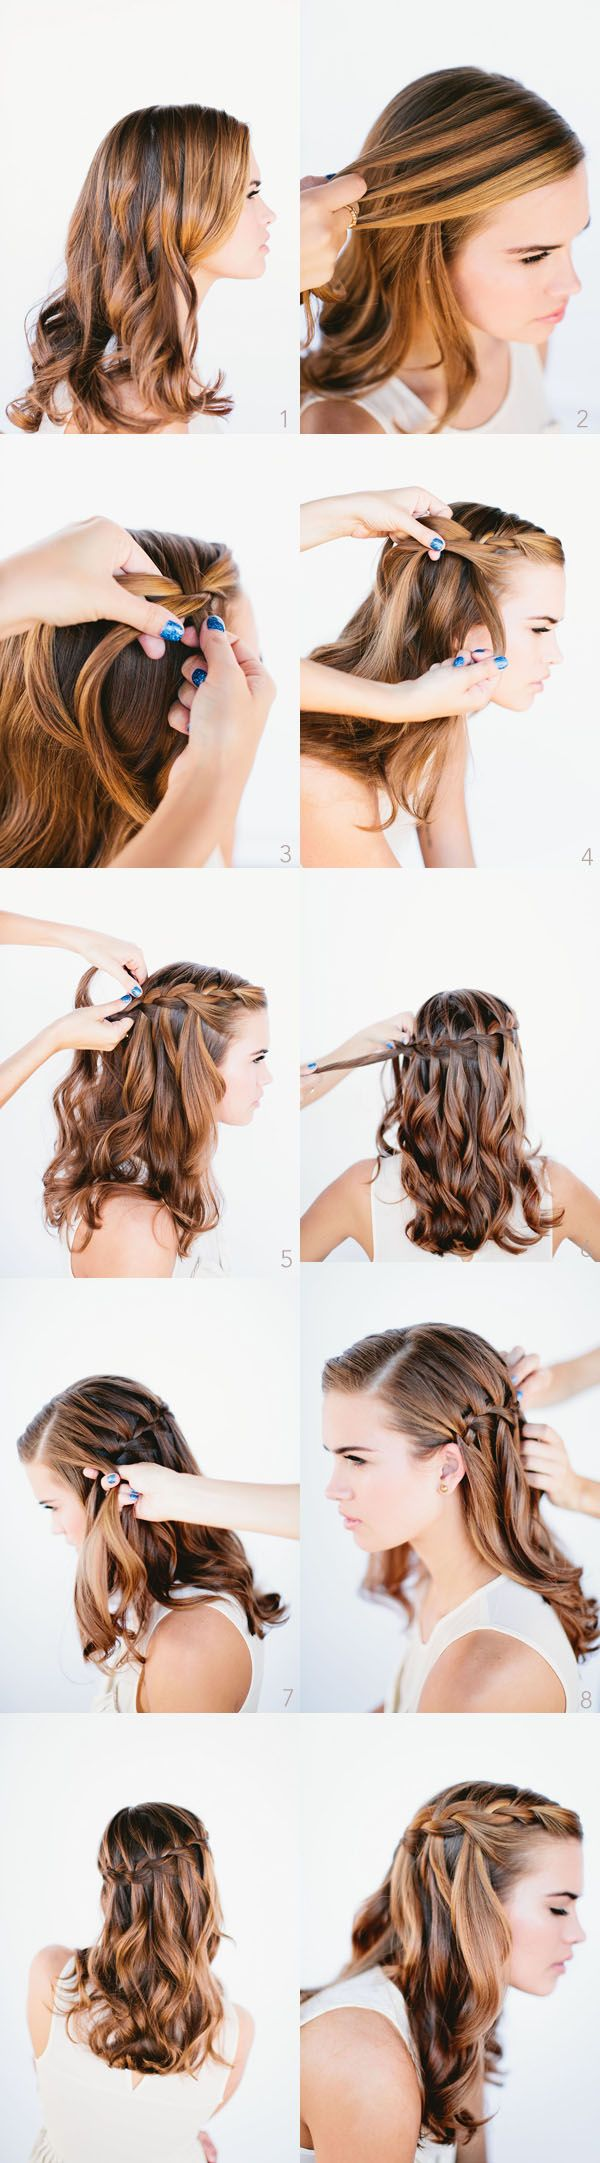 Waterfall Braid Wedding Hairstyles for Long Hair-- Beach hair! #wedding #inspiration #details #hair #beach #beachhair    This would be cute for Beth's wedding :)